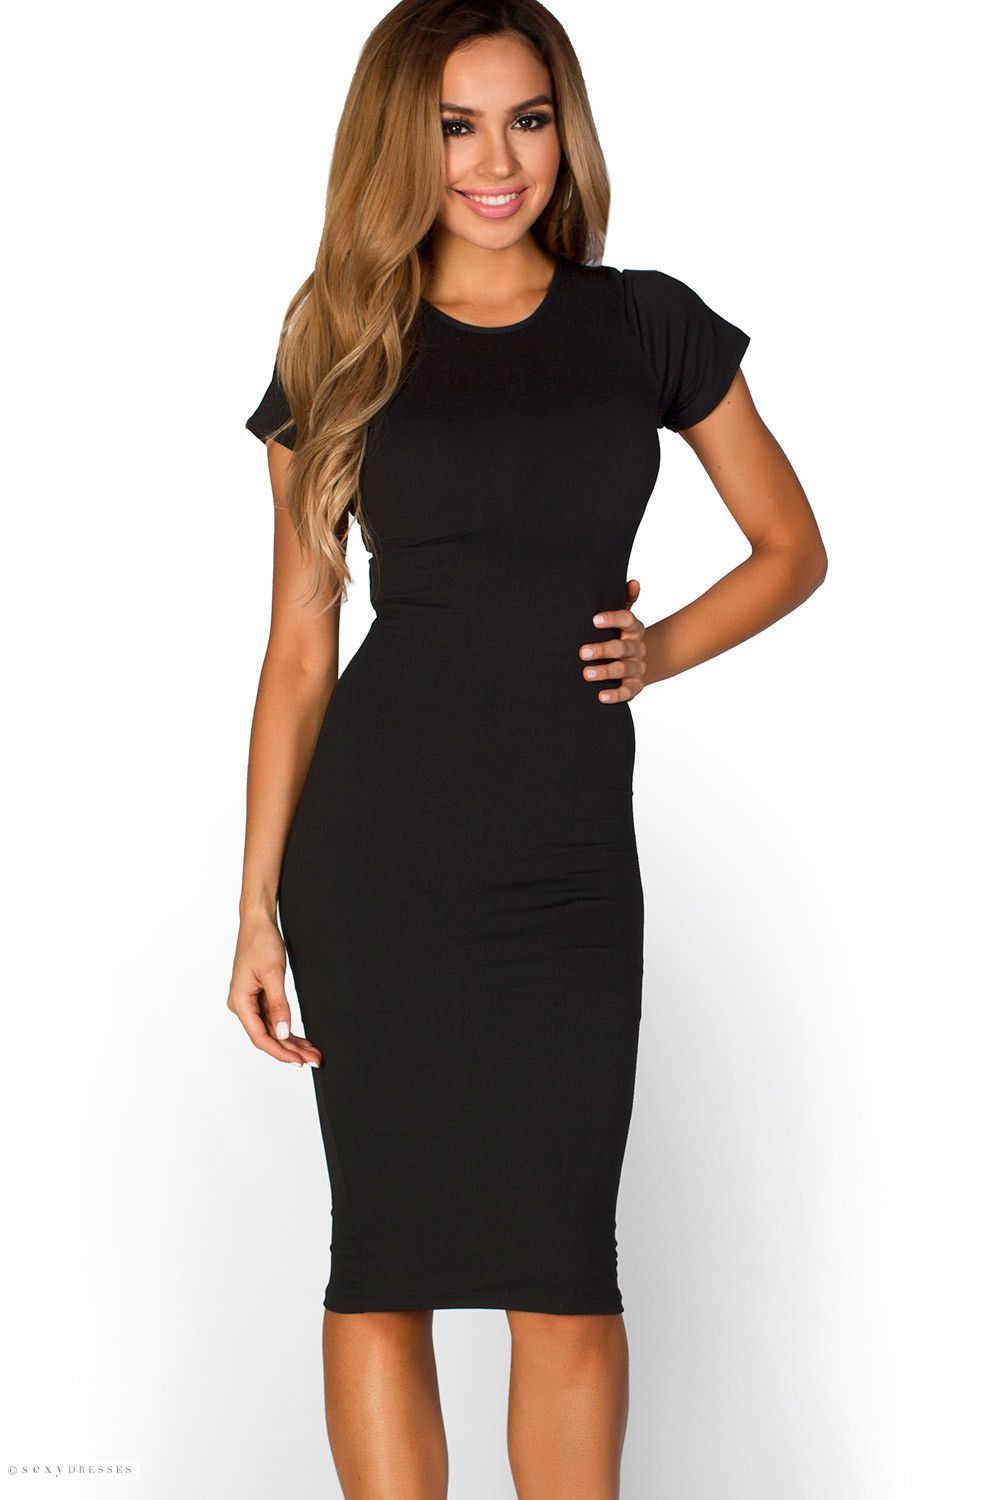 08017e025f9 Short sleeve bodycon midi dress is a sexy little black dress that feels  soft and stretchy like a light t shirt! Wear this comfy sexy dress as a  cute casual ...